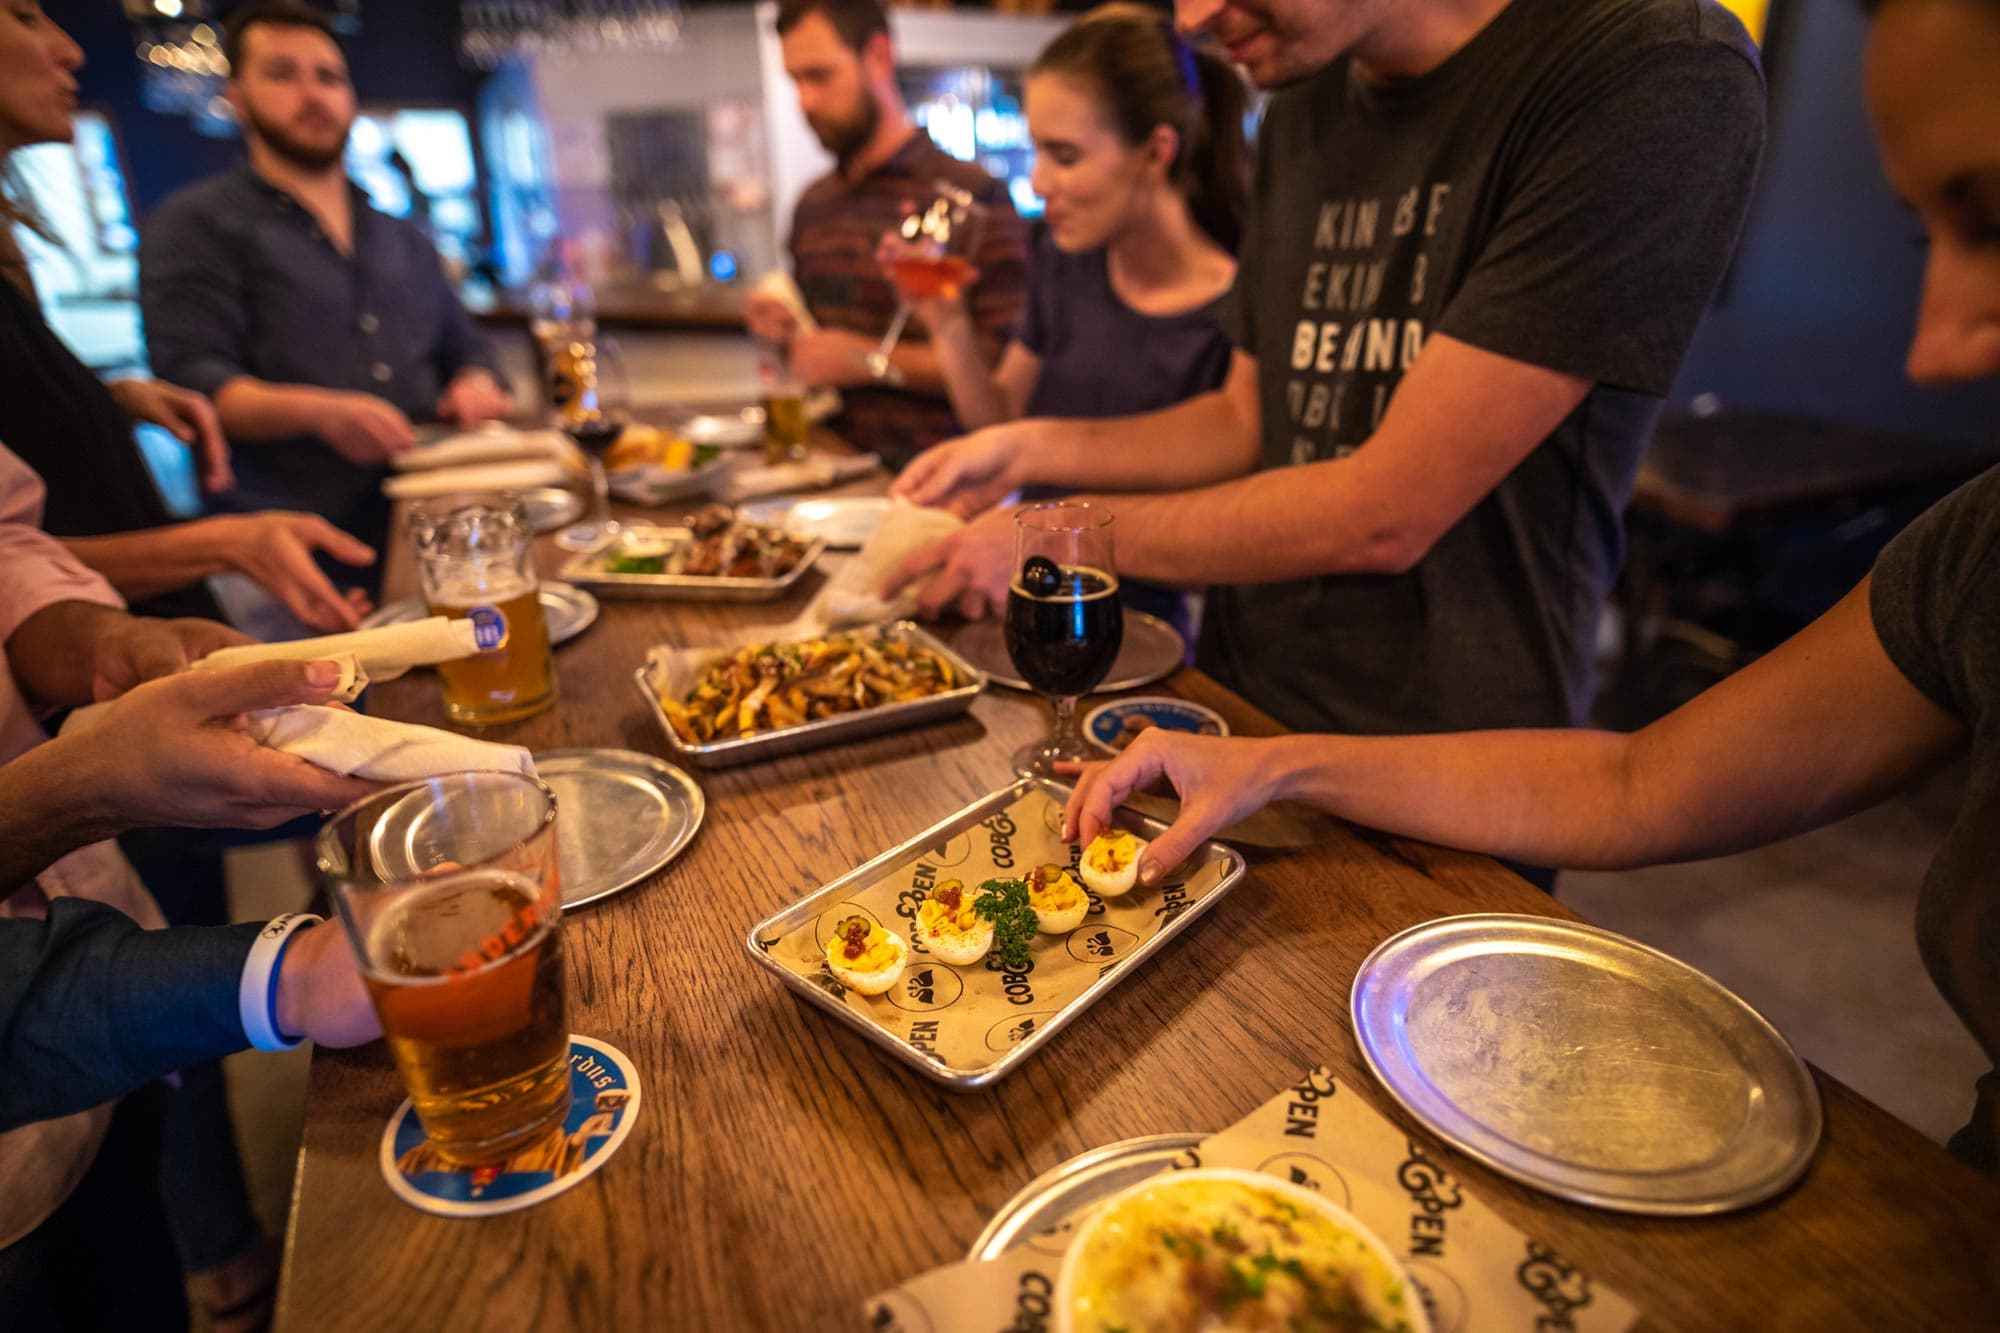 adults gathered around table at Cob & Pen in Lakeland, FL drinking beer and sharing small bite plates of deviled eggs, dip, french fries and wings